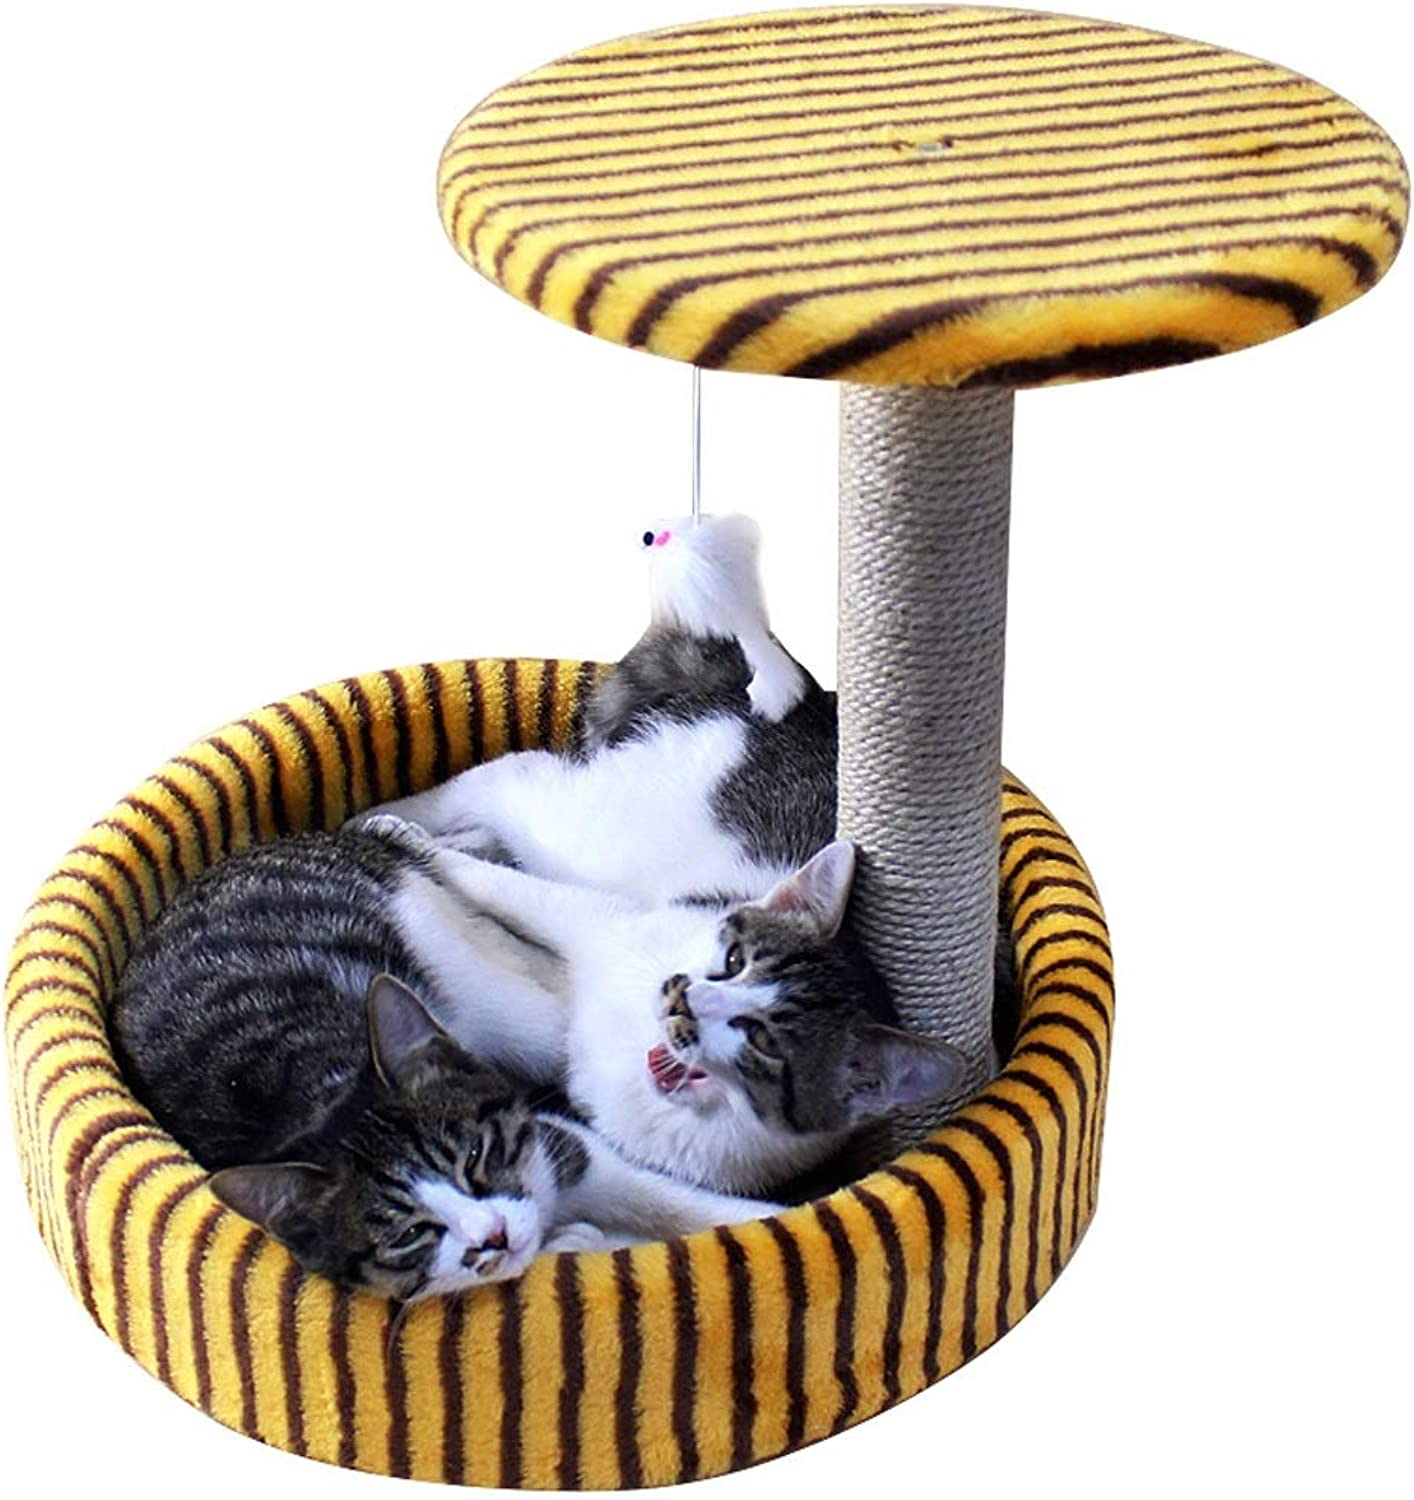 Cat climbing toys, cat nest + toy combo, bold sisal cat scratch board, grinding claws, cat paradise, plush mouse hanging toys, two colors to choose from, cat litter diameter 15.7 inches, height 13.4 i